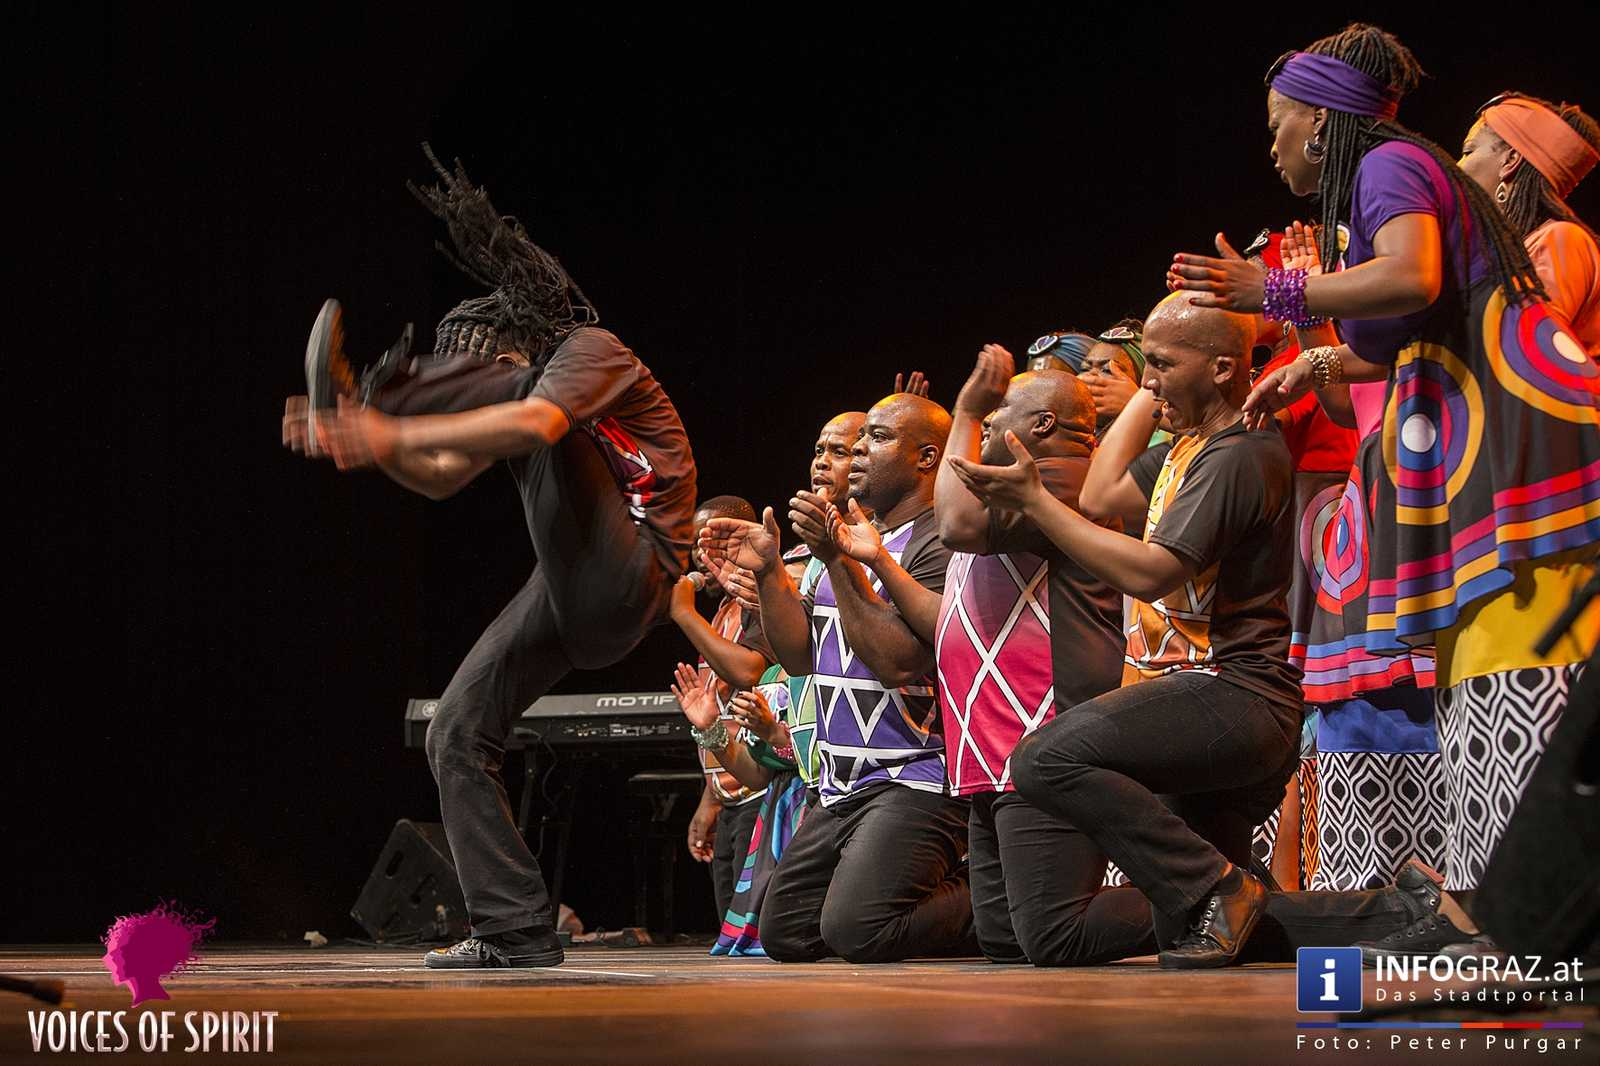 soweto gospel choir internationales chorfestival statdthalle graz voices of spirit eroeffnung festivals 2016 069